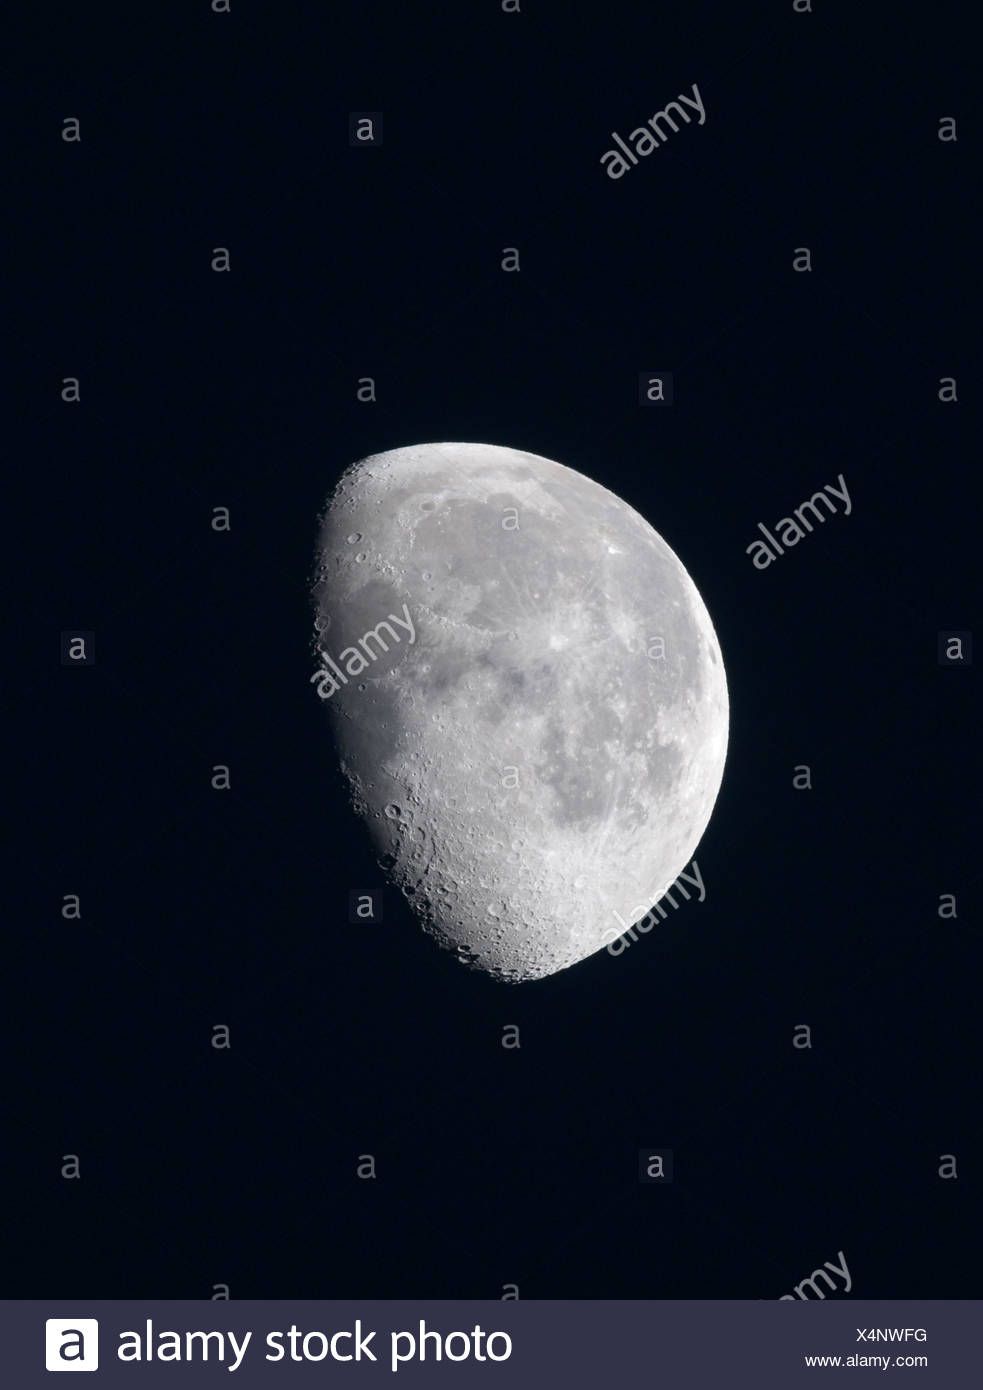 The Moon - Stock Image